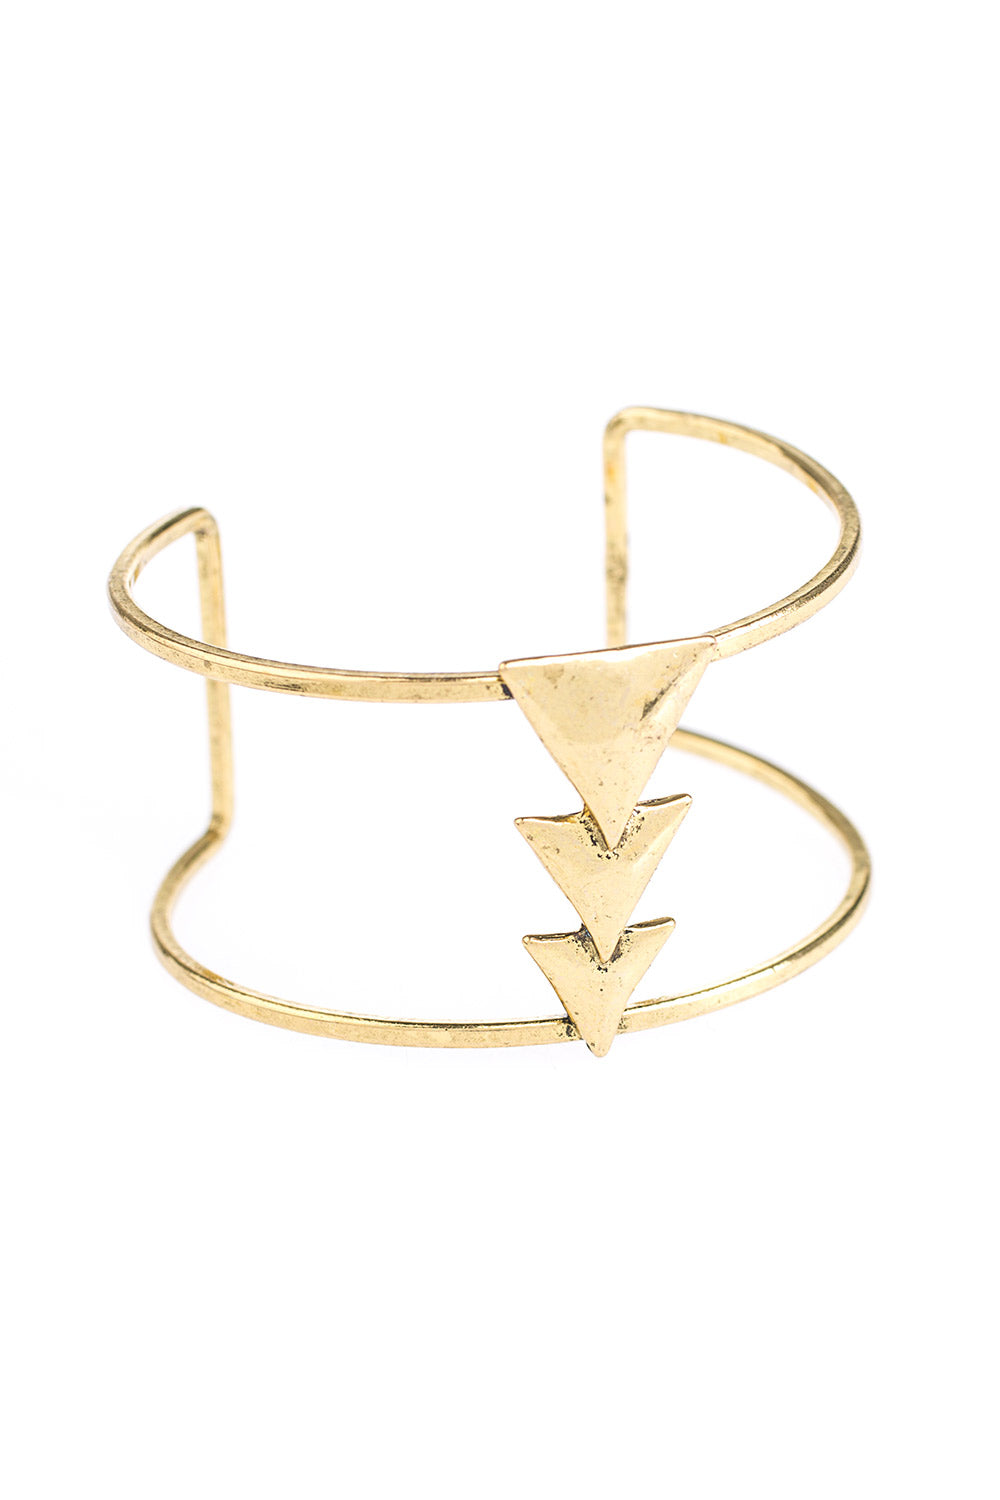 Type 3 Straight Arrow Cuff